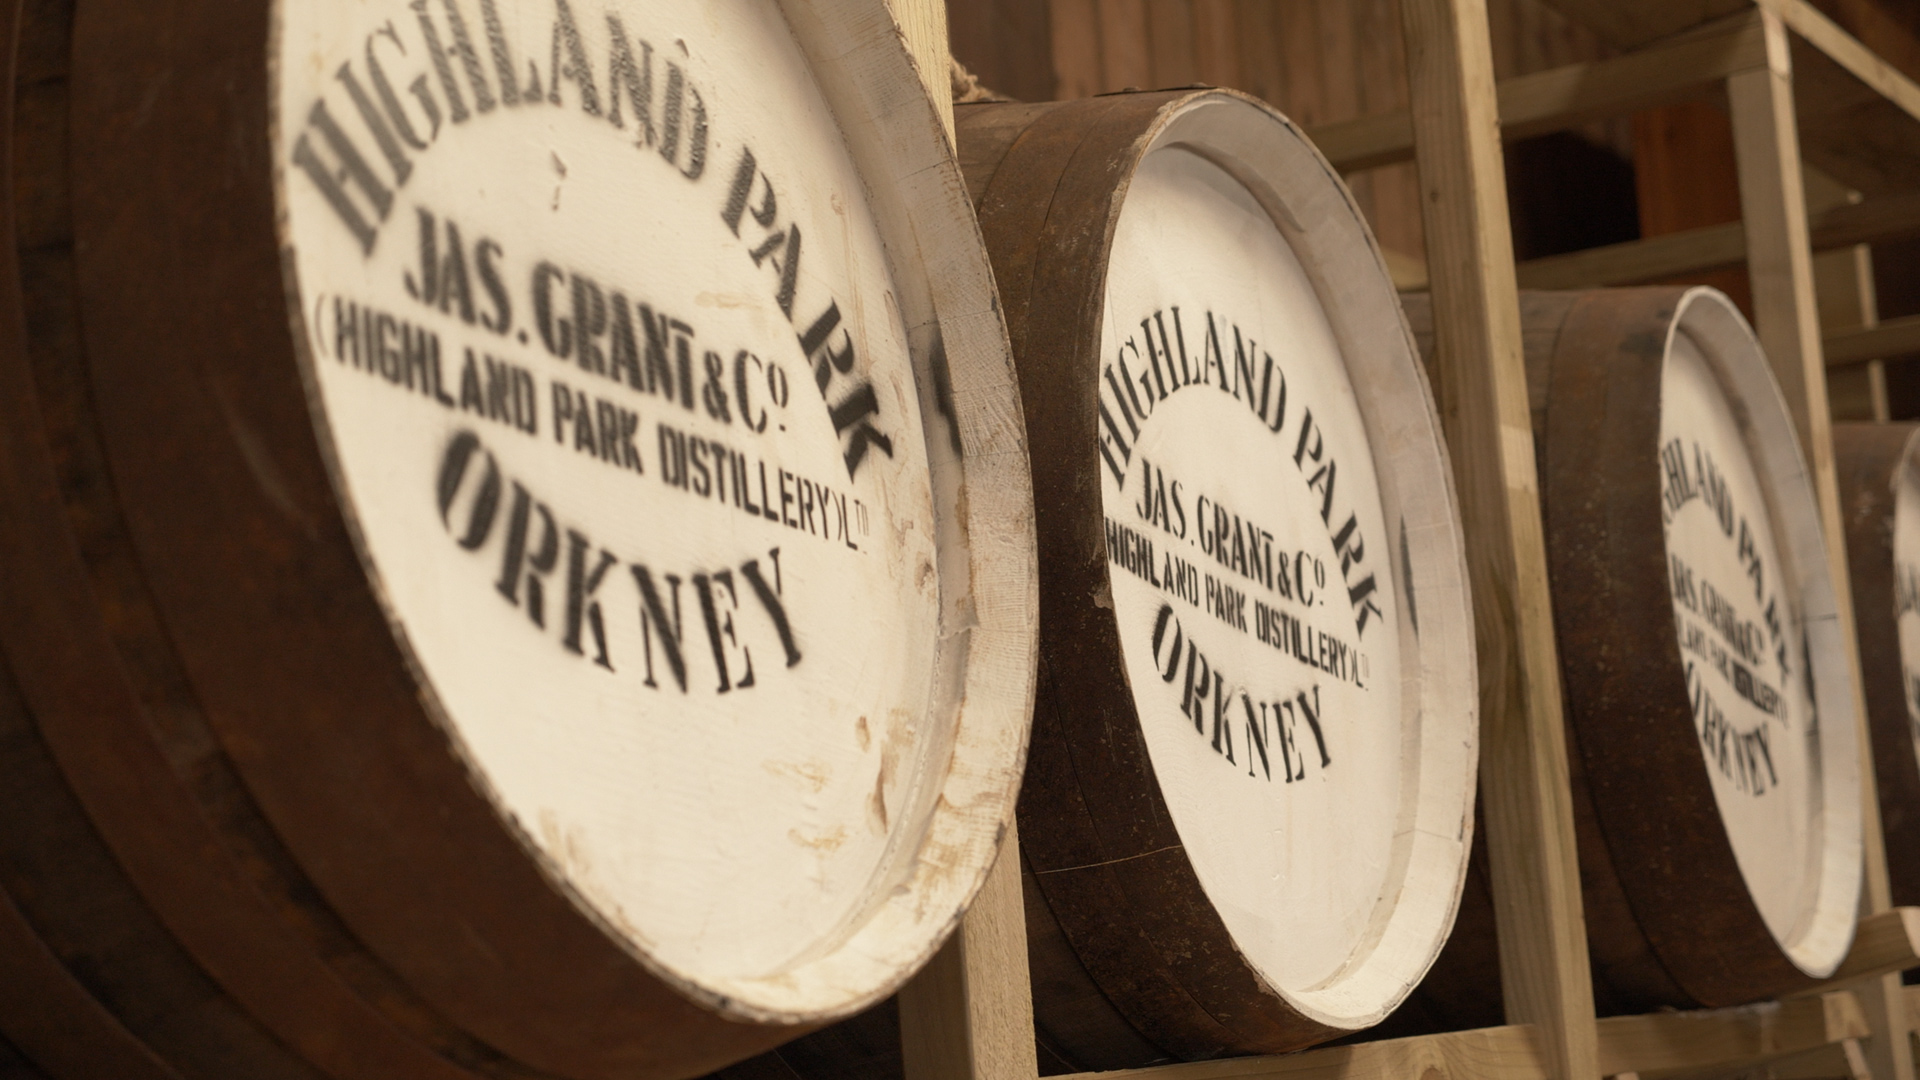 The Bere Malt vinegar is left to age in oak casks to help develop its flavour